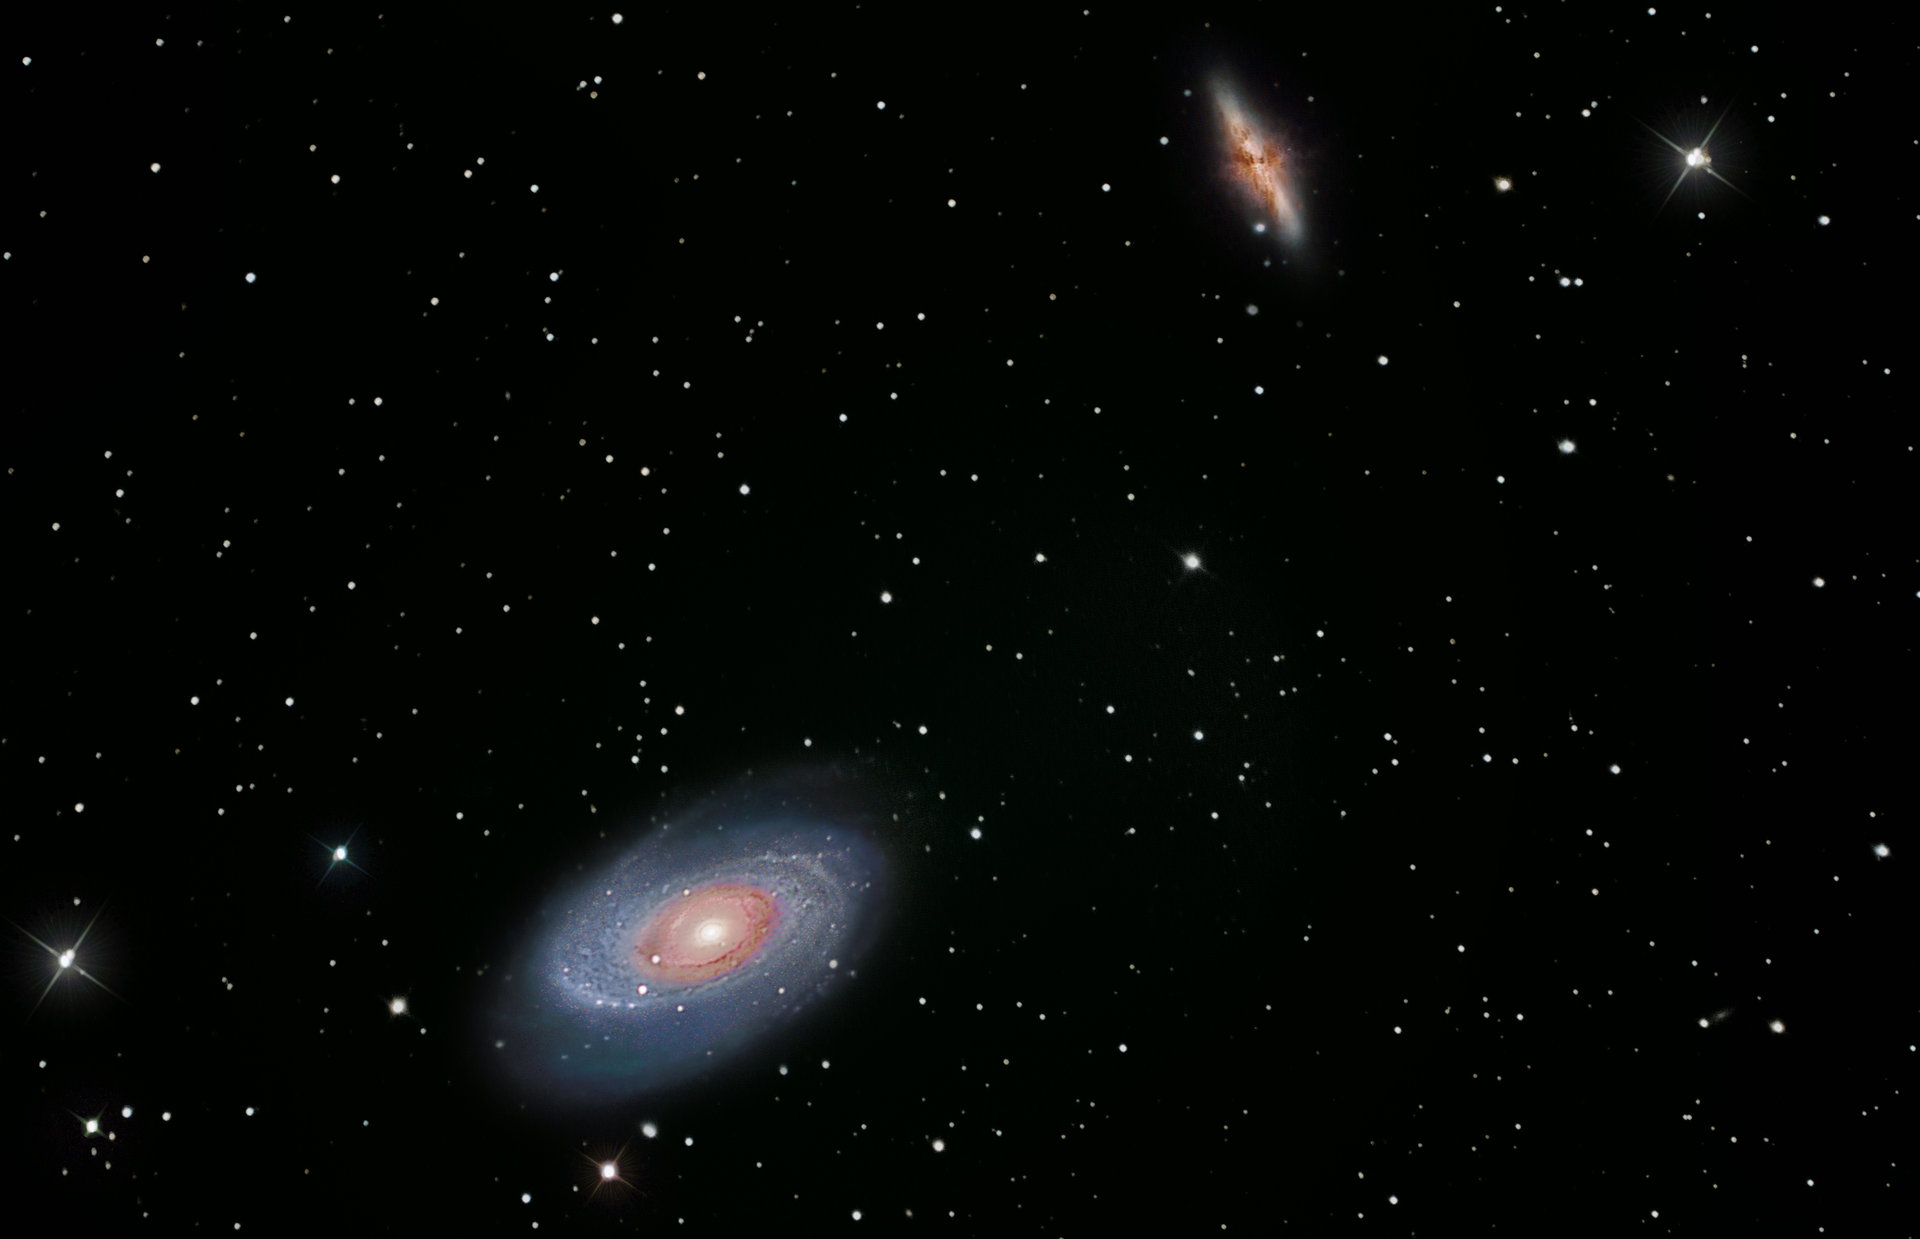 Photo in Astrophotography | Author rs_71 | PHOTO FORUM